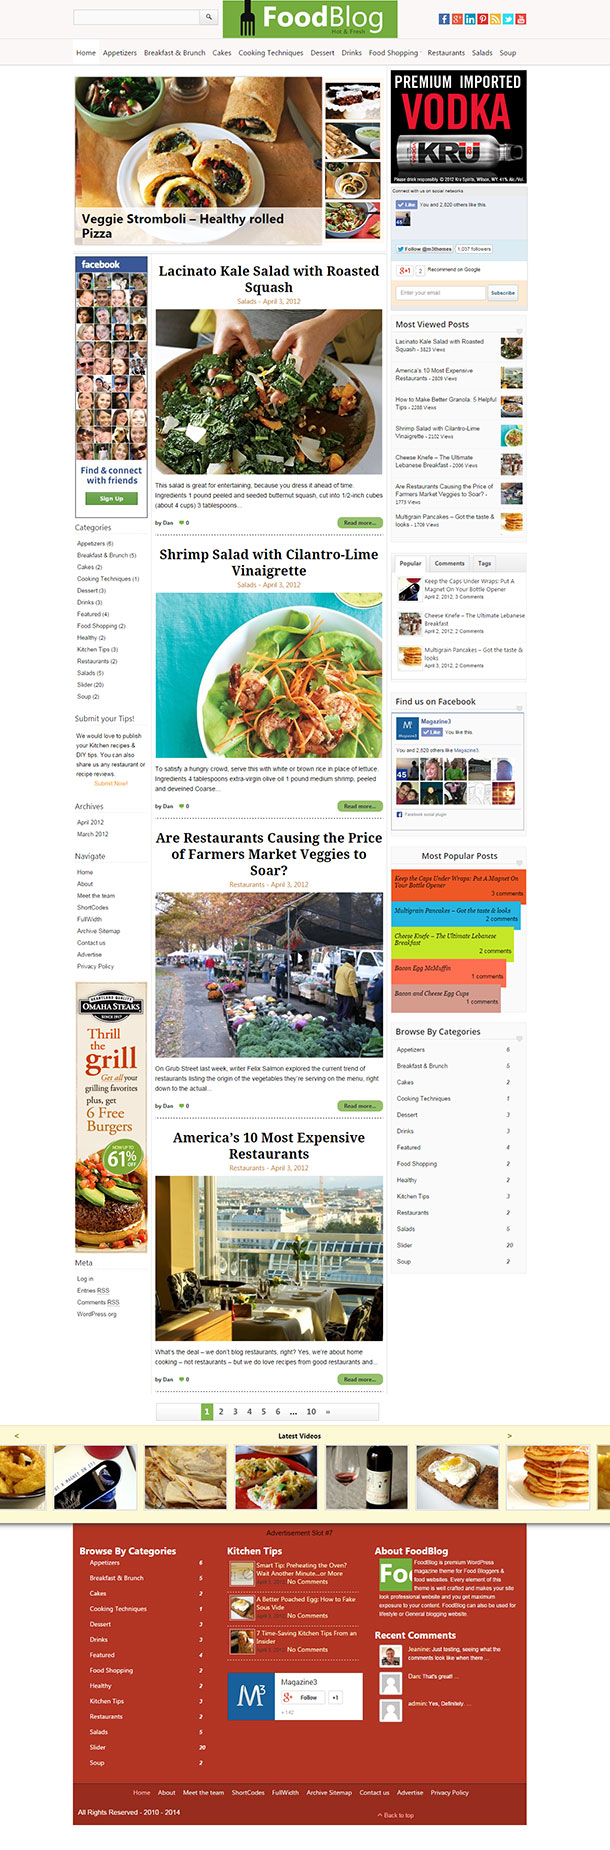 Food Blog Theme Image